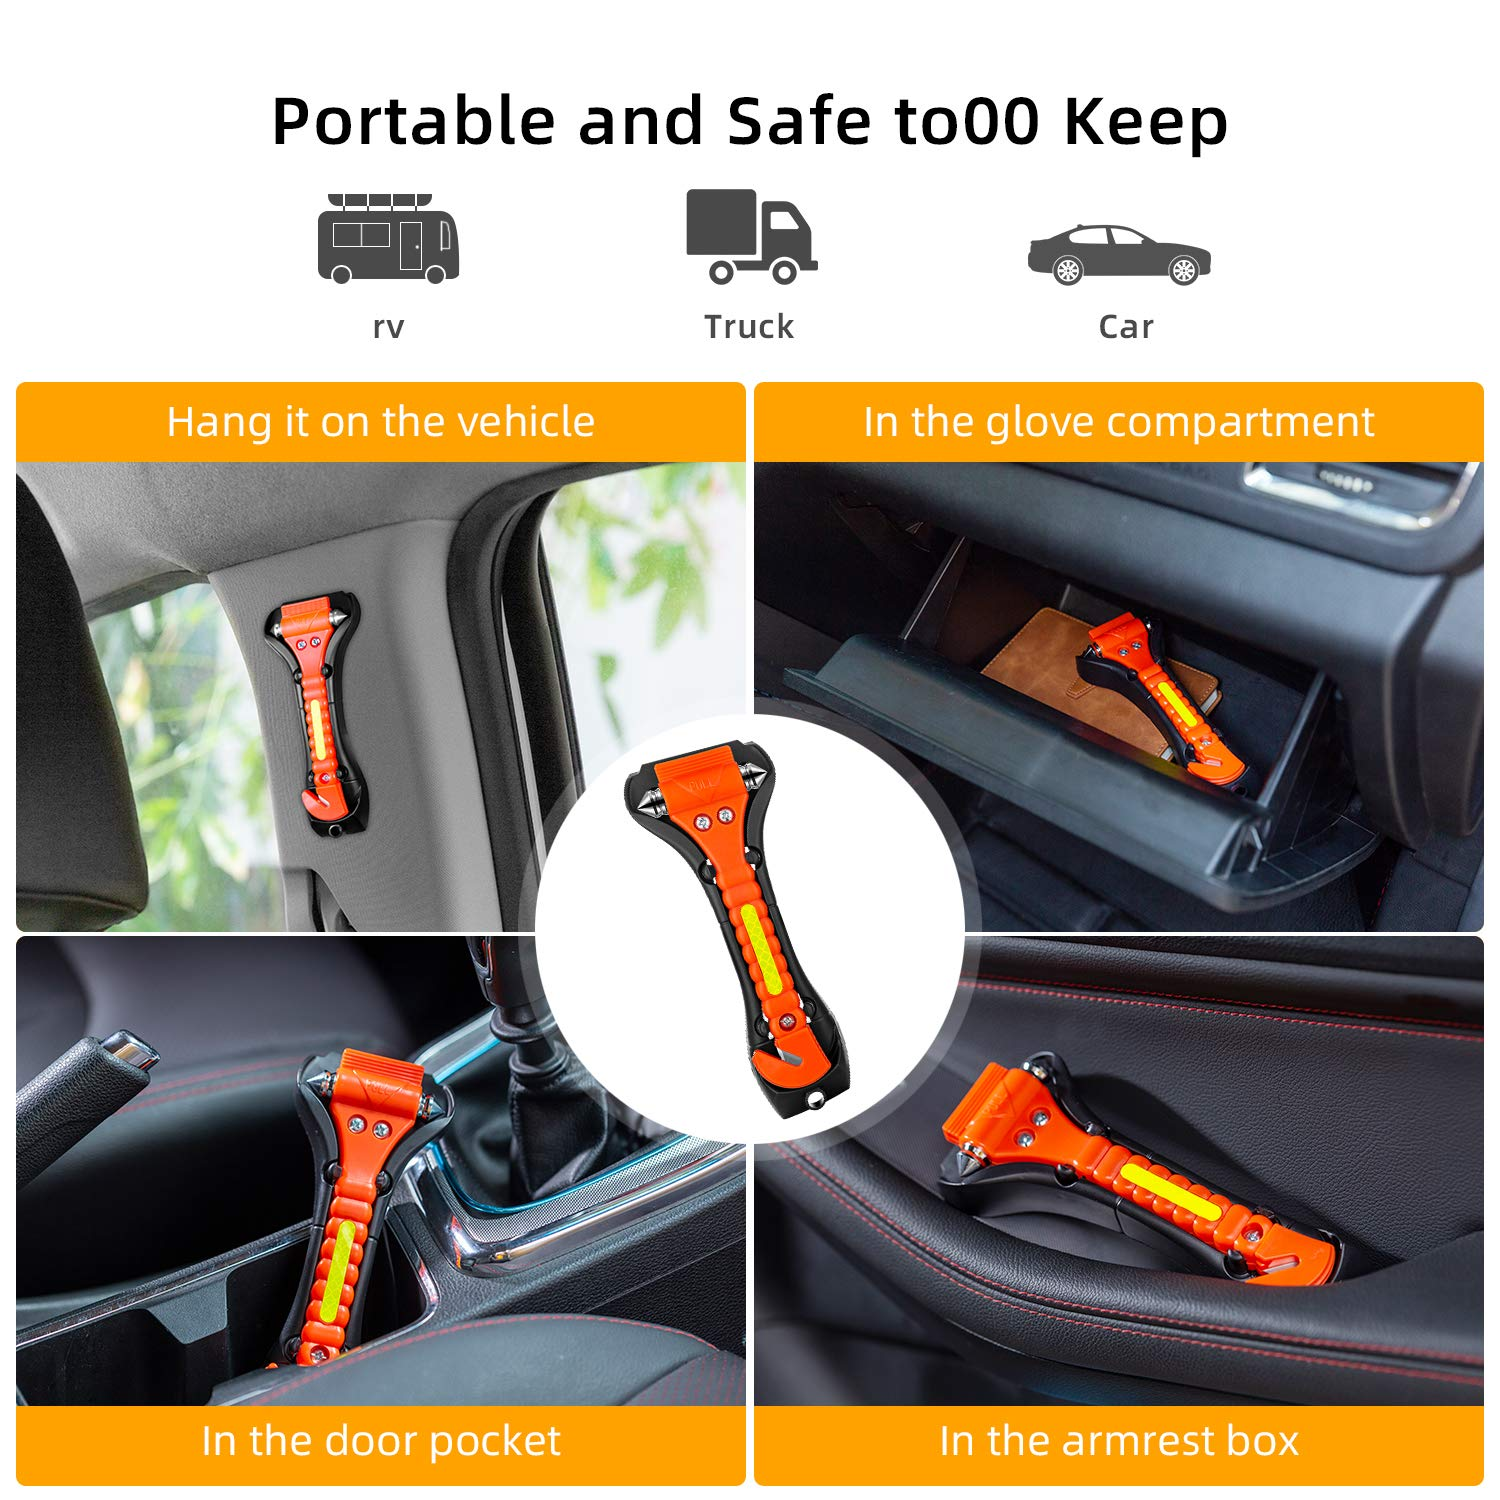 Life Saving Survival Kit Emergency Escape Tool Safety Hammer Nomiou Window Breaker and Seat Belt Cutter